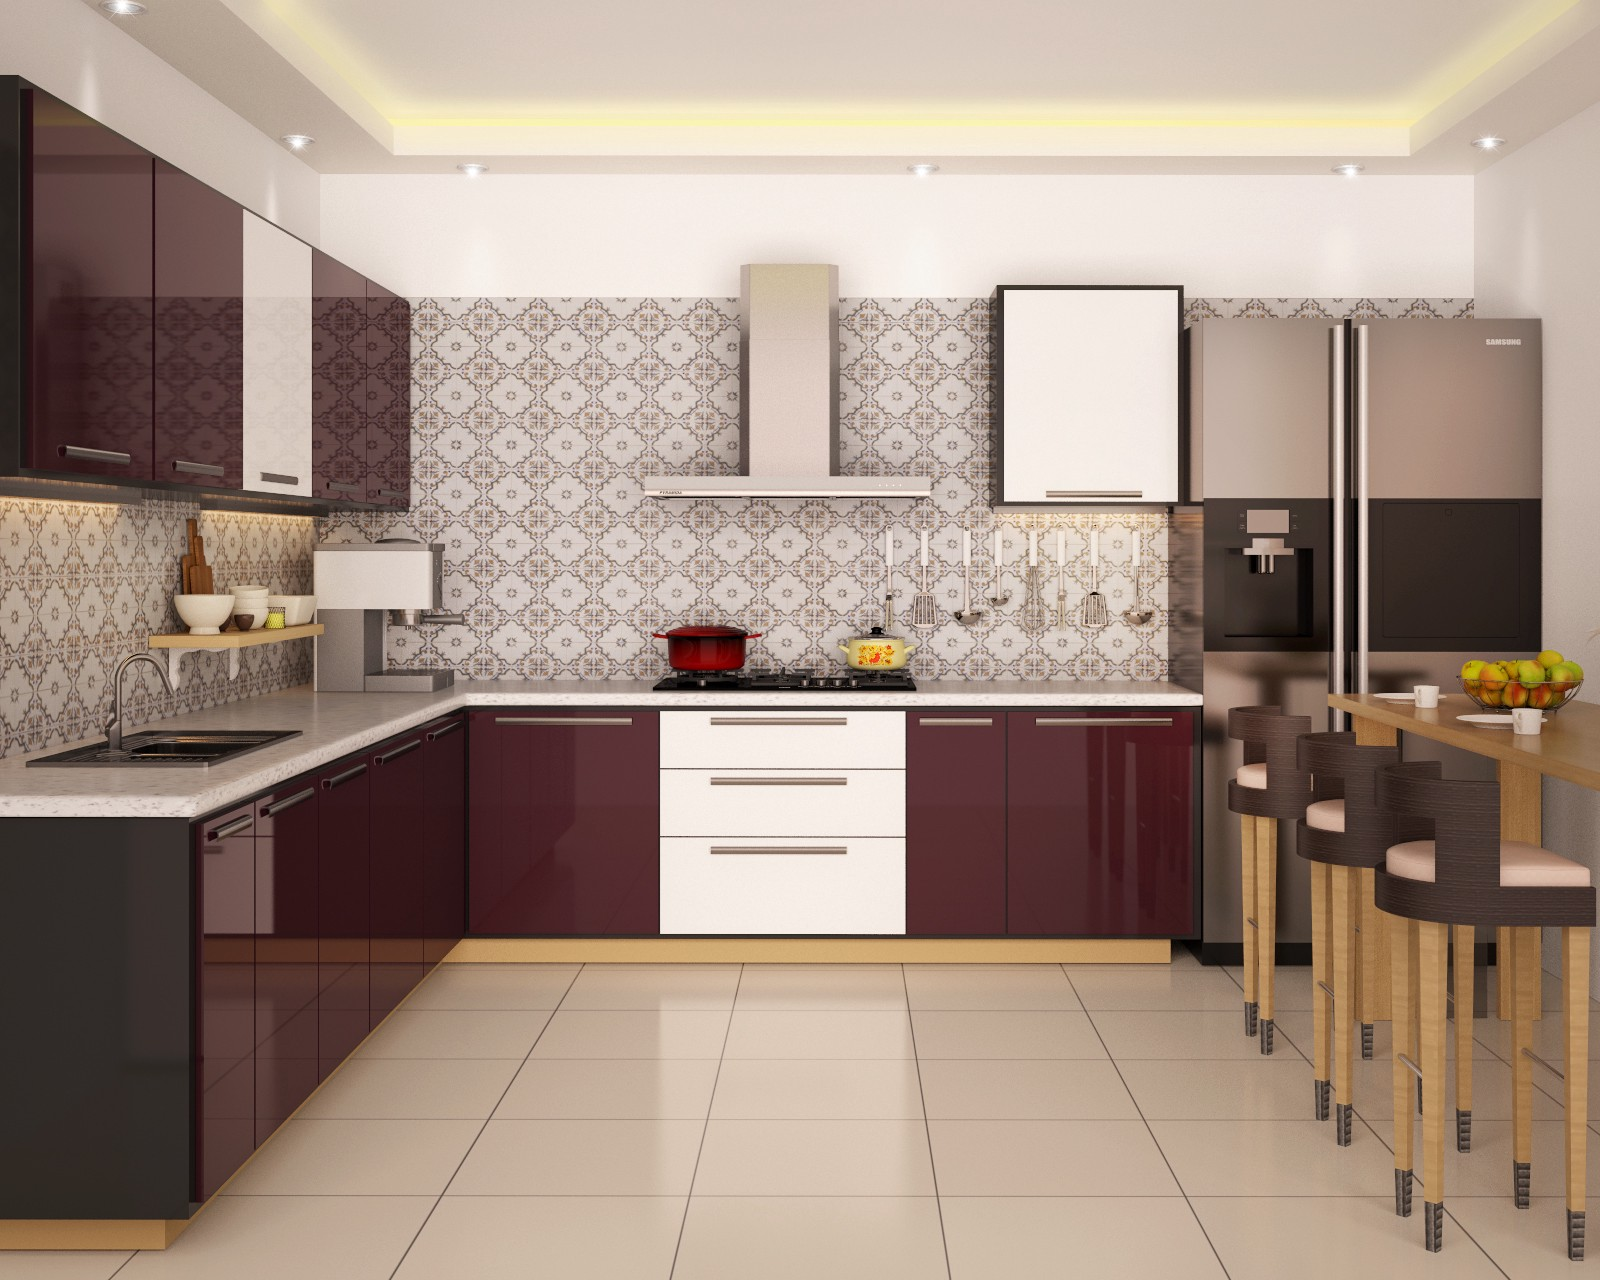 Kitchen Design Incorporates Appliances, Worked In Technology Chimneys To  Utilize It Ideally, Countertops, Slab Work And With Every One Of The  Accessories ...